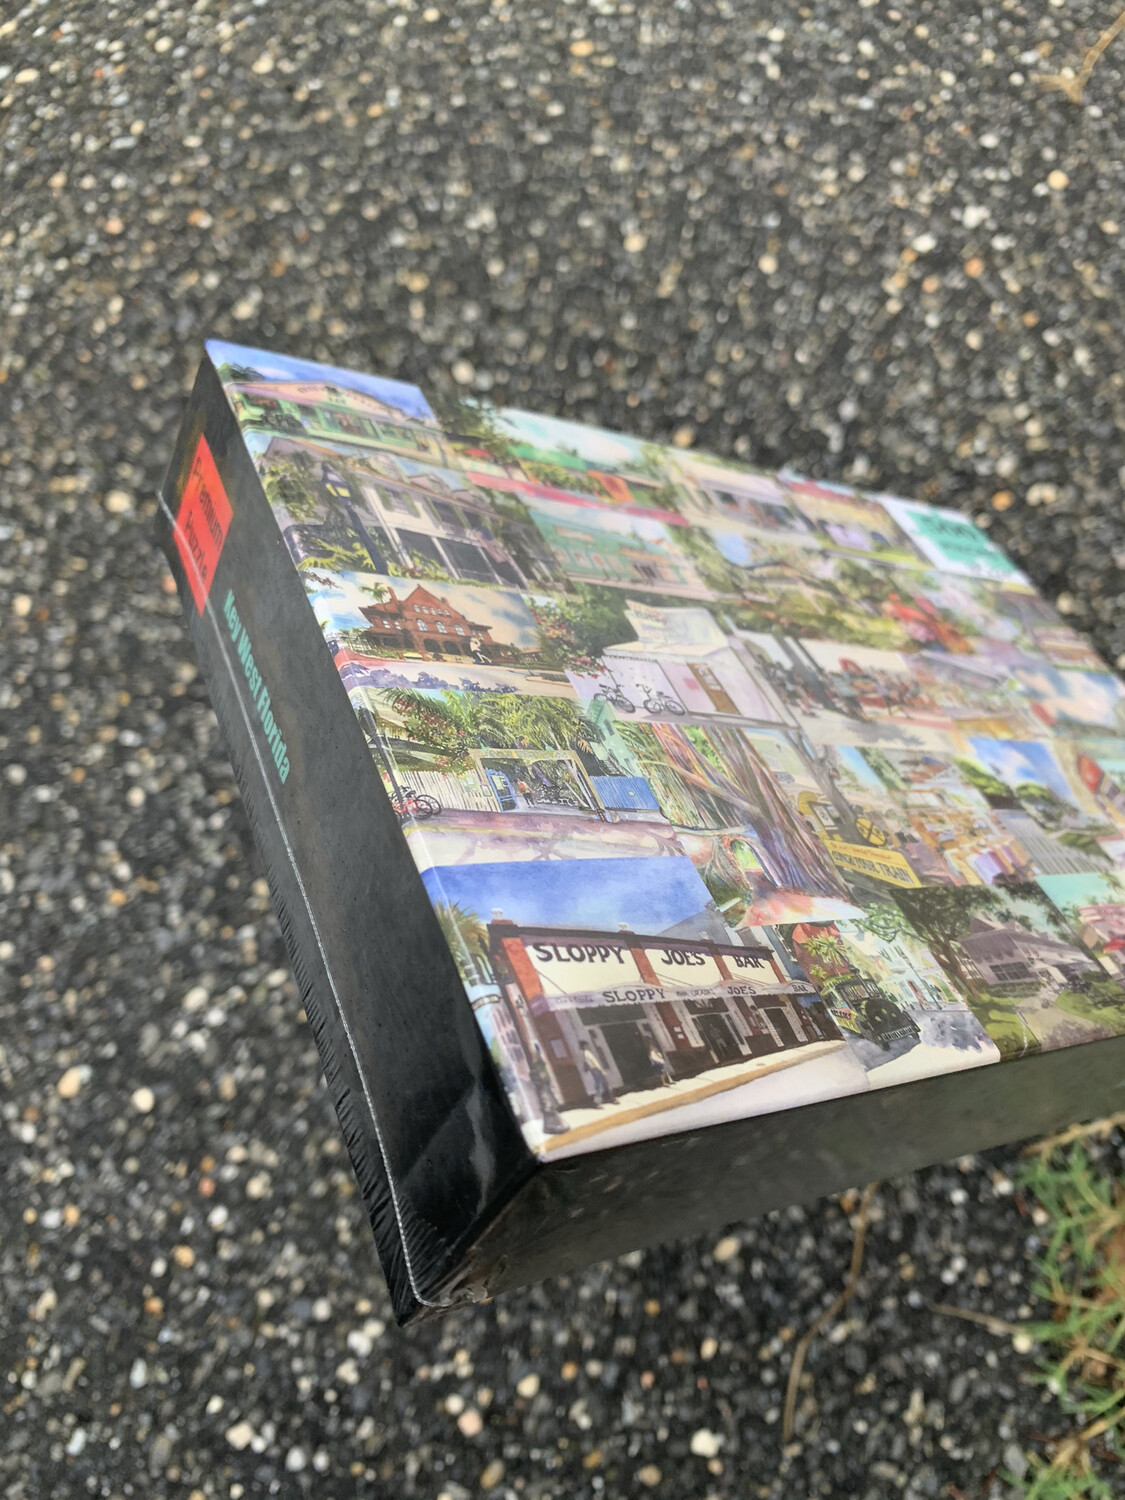 """PUZZLE - 500 Piece Key West Florida Puzzle - Watercolor artwork designed by Brenda Ann - Assembled size 18""""x24"""" - Special Order - Allow 3 Weeks"""